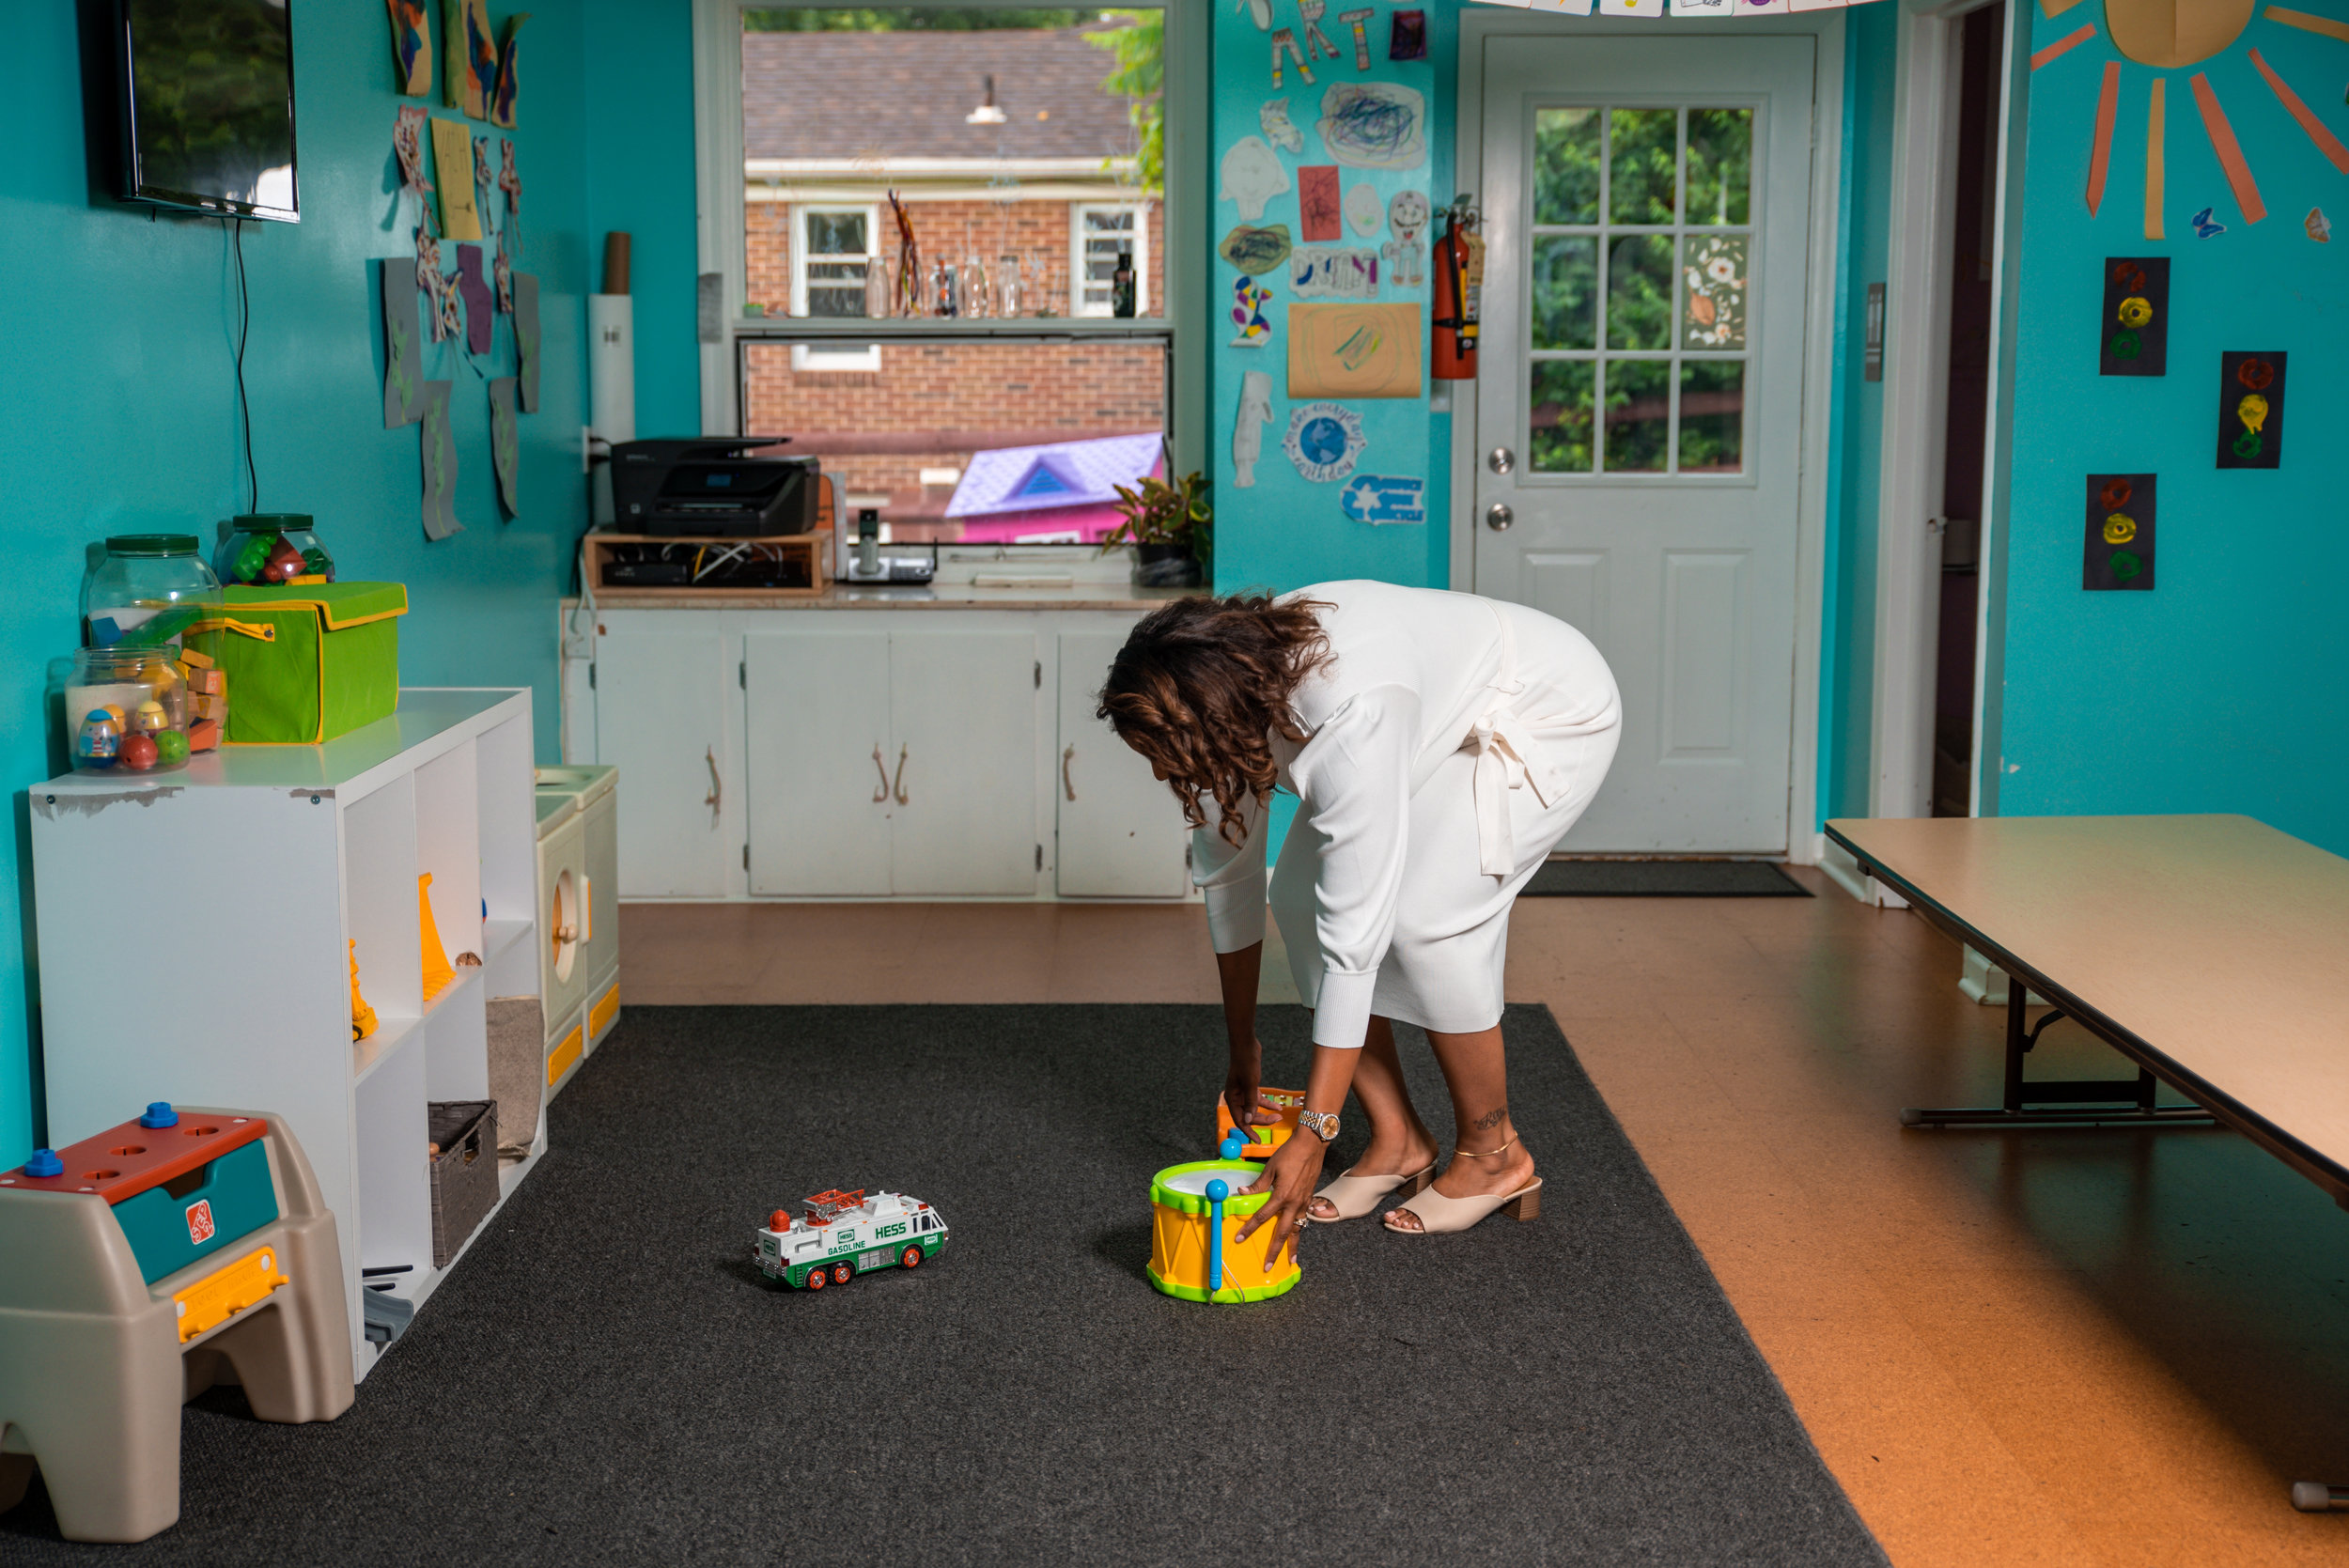 Karlena Cleaning up some toys left behind